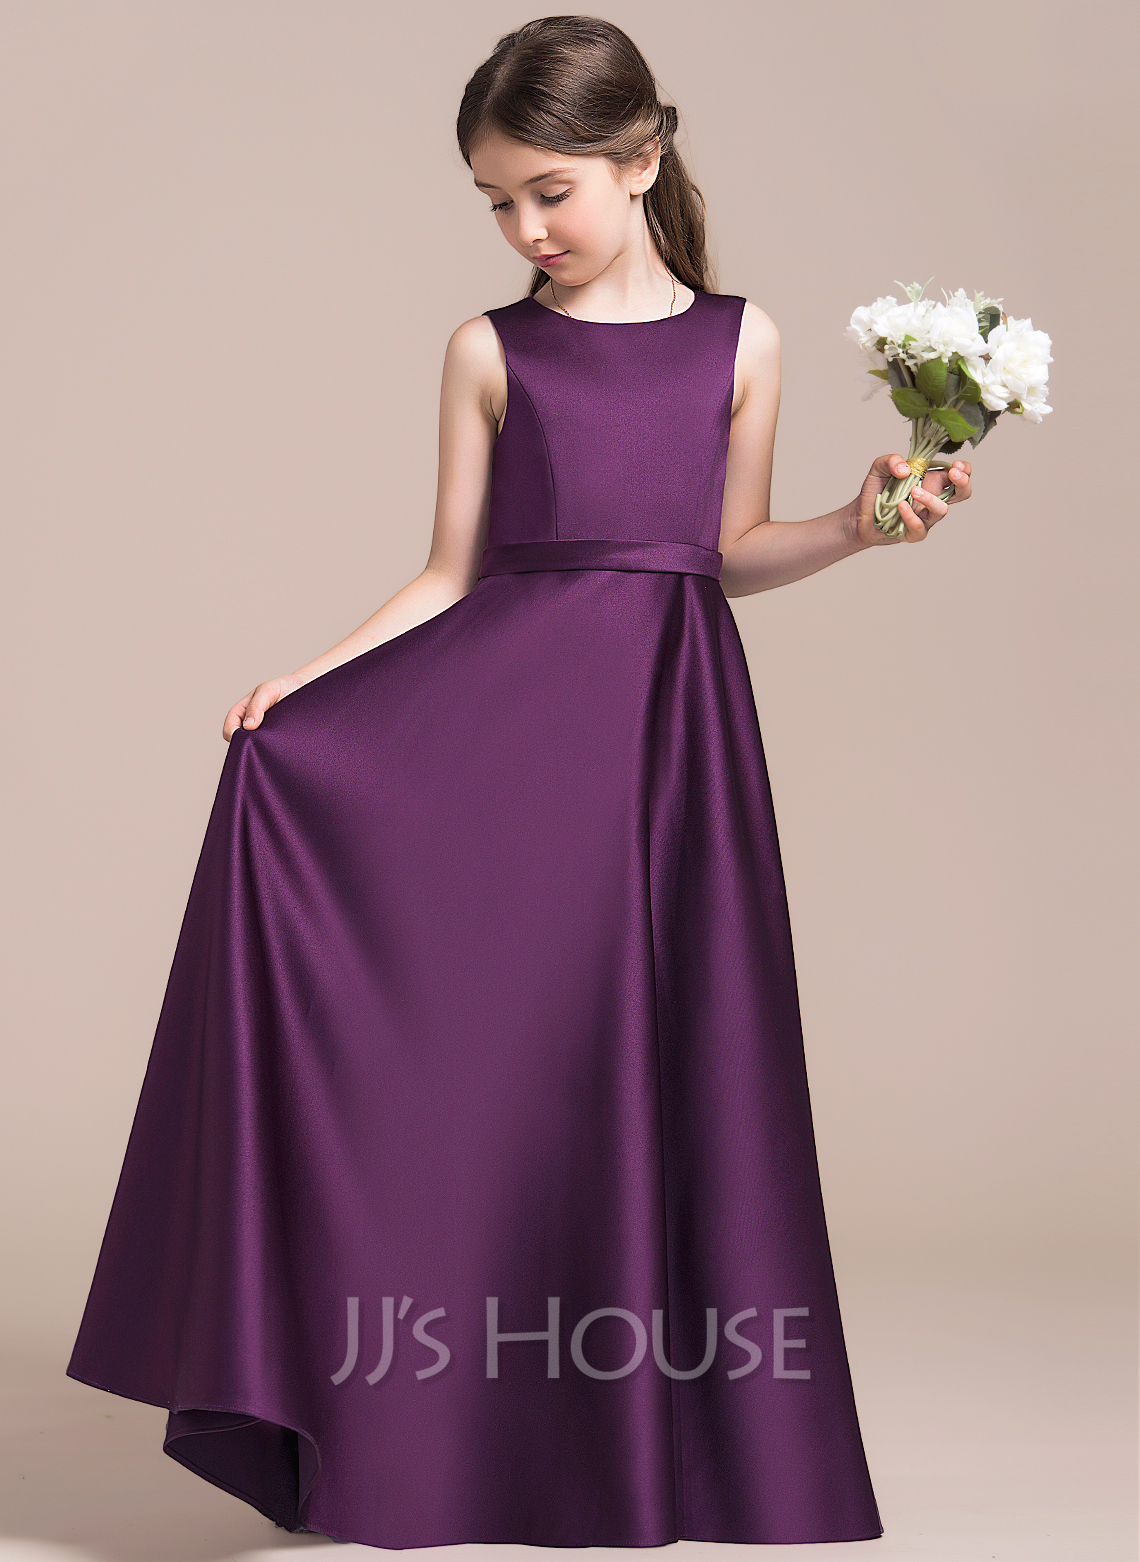 A-Line/Princess Scoop Neck Floor-Length Satin Junior Bridesmaid Dress